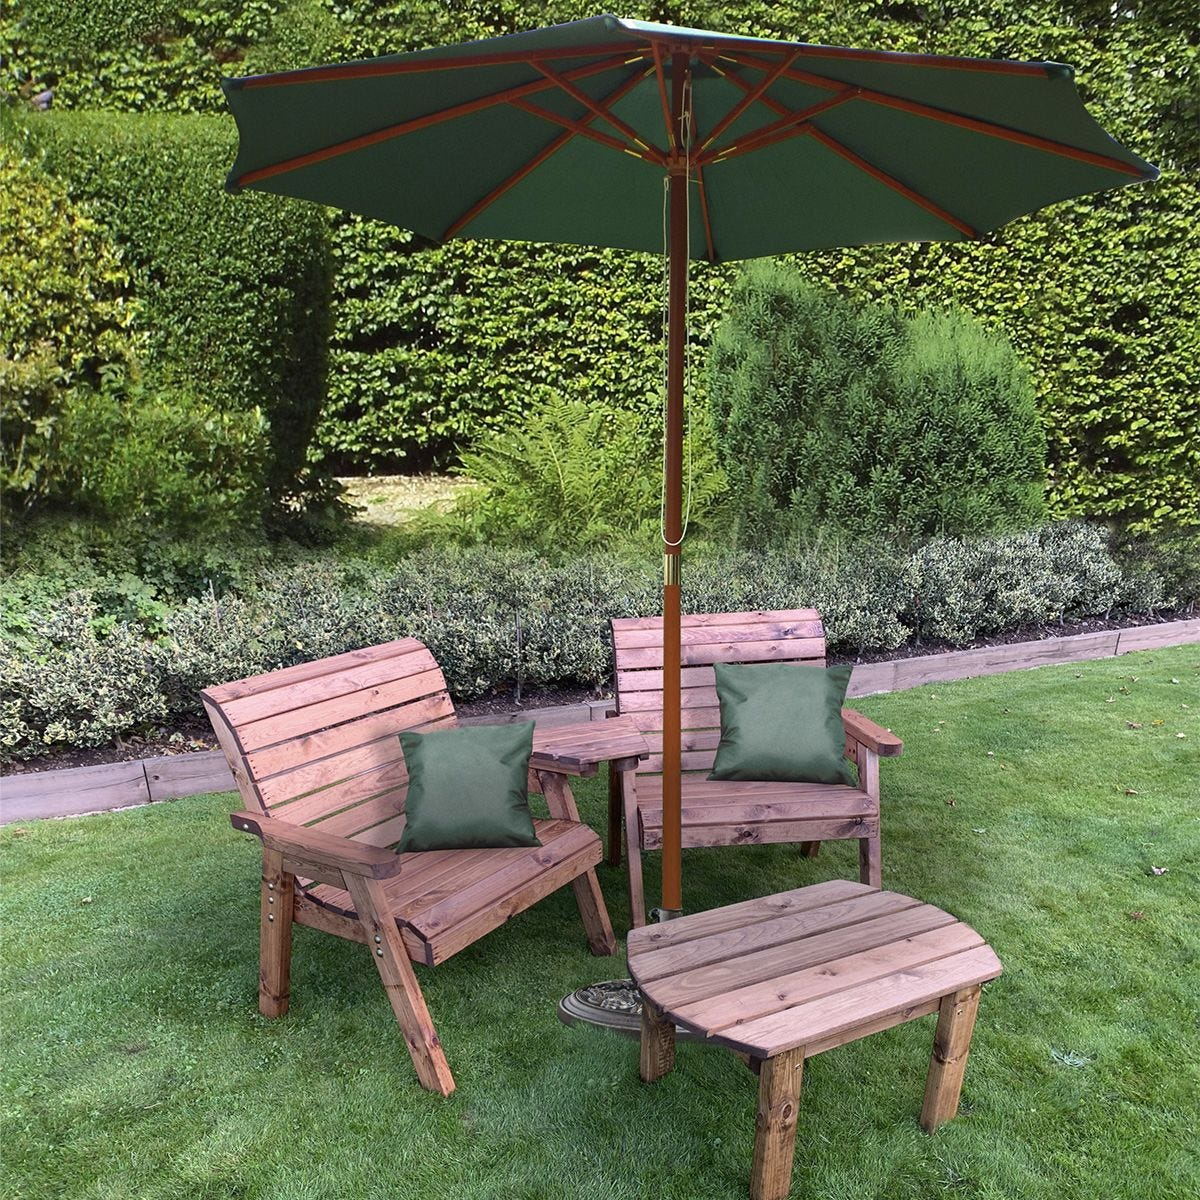 Charles Taylor Grand Twin Angled with Coffee Table and Green Parasol and Cushions